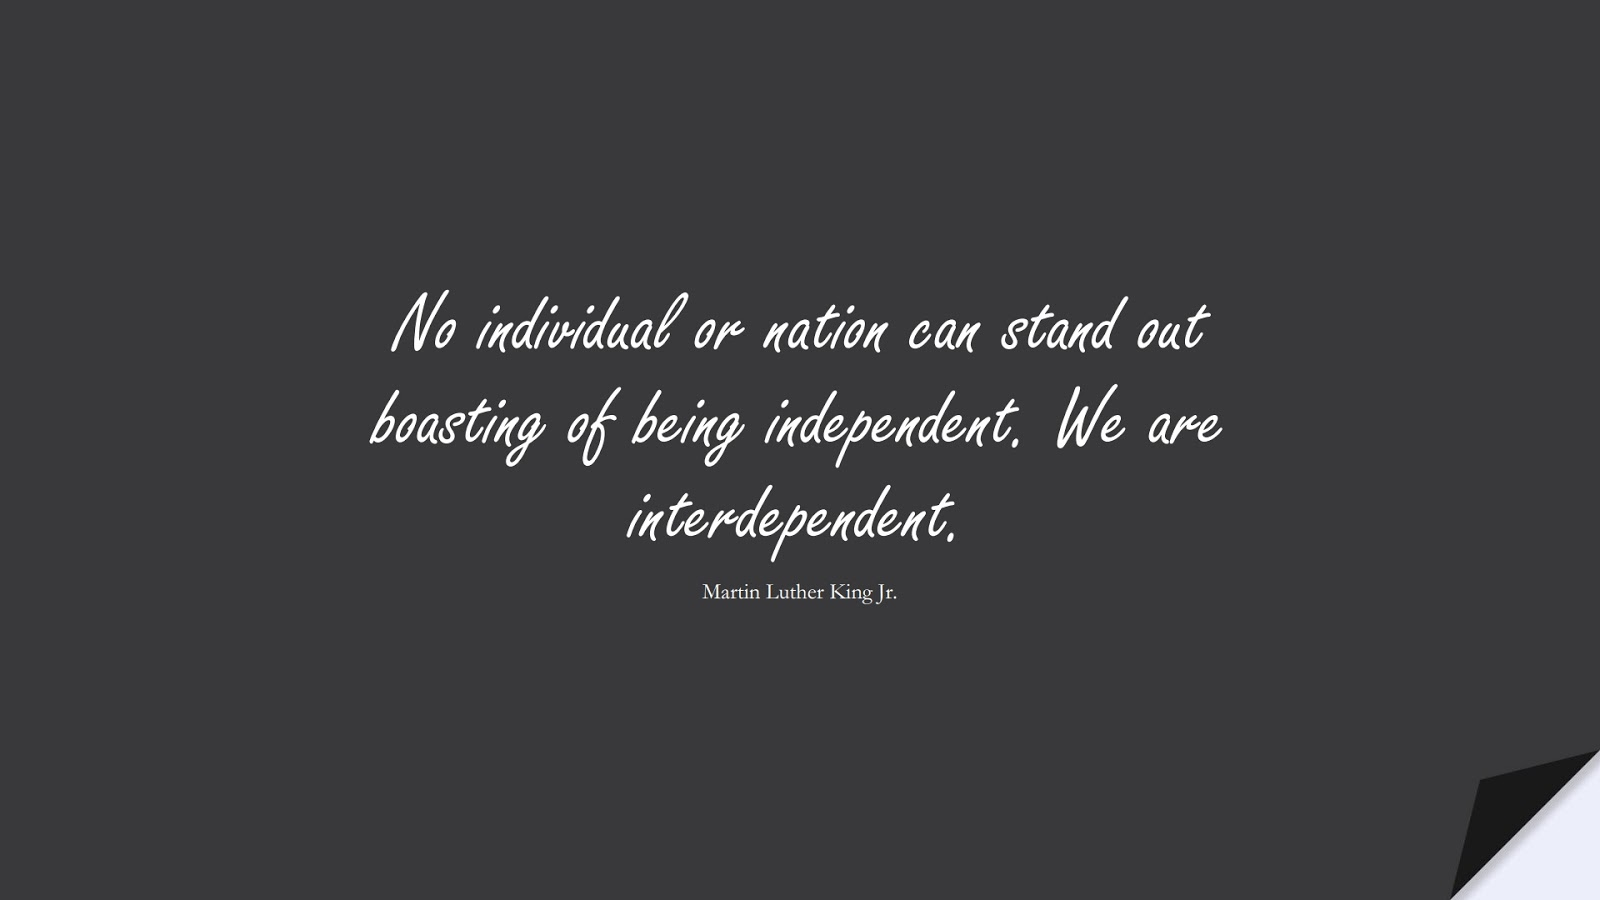 No individual or nation can stand out boasting of being independent. We are interdependent. (Martin Luther King Jr.);  #MartinLutherKingJrQuotes